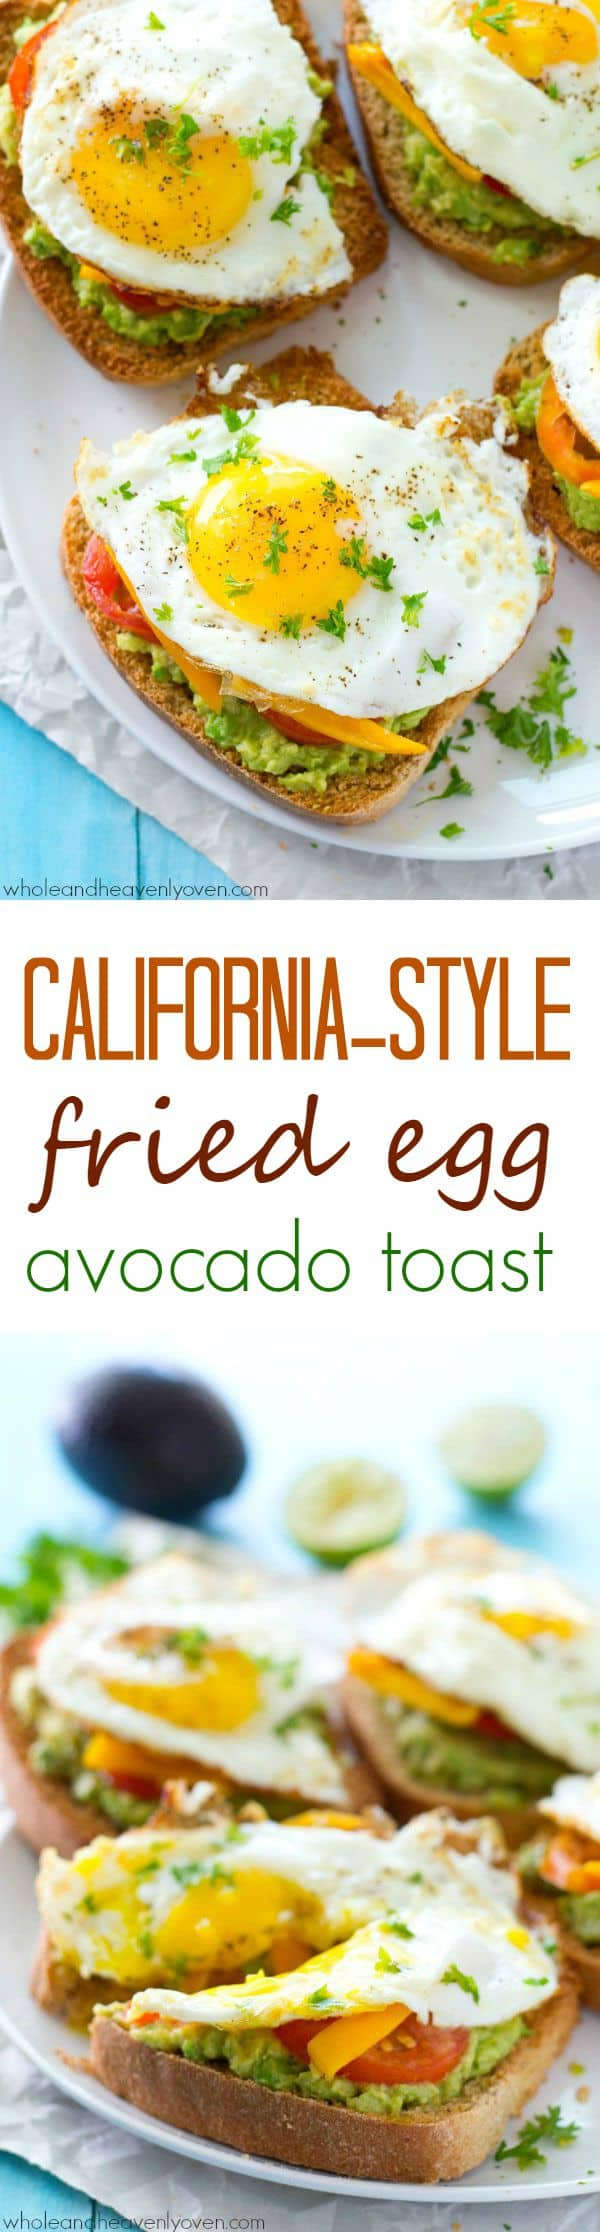 Avocado toast is given a fun California-style twist! This ultimate breakfast toast is piled with lots of smashed avocado, fresh veggies, and a beautiful fried egg on top. @WholeHeavenly